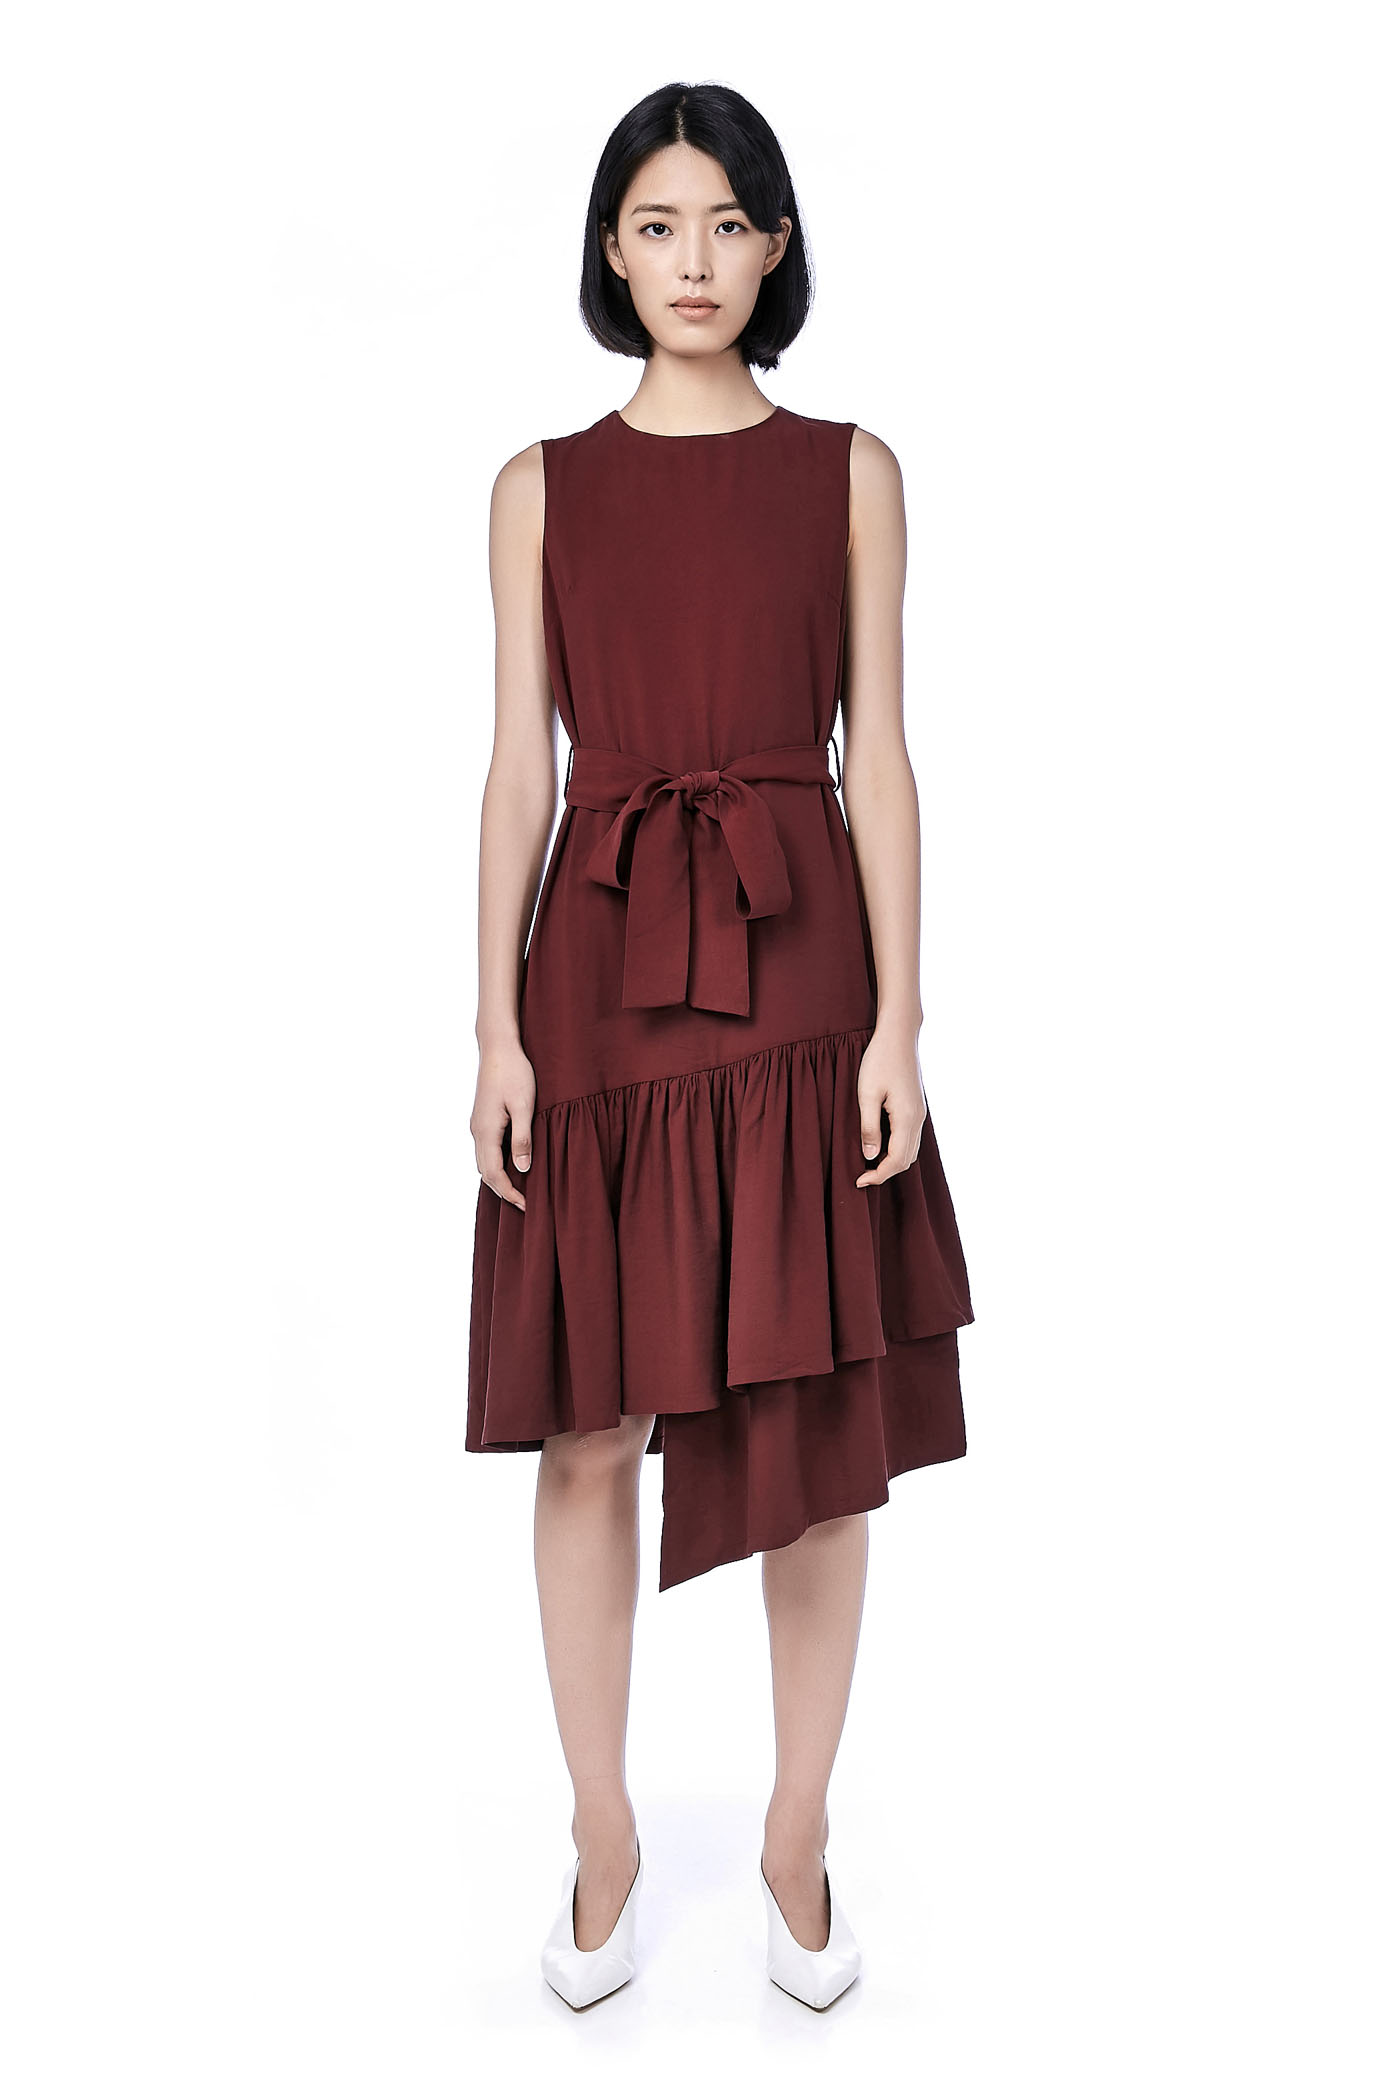 Mary Asymmetric Hem Midi Dress The Editors Market Skirt Maroon M Back